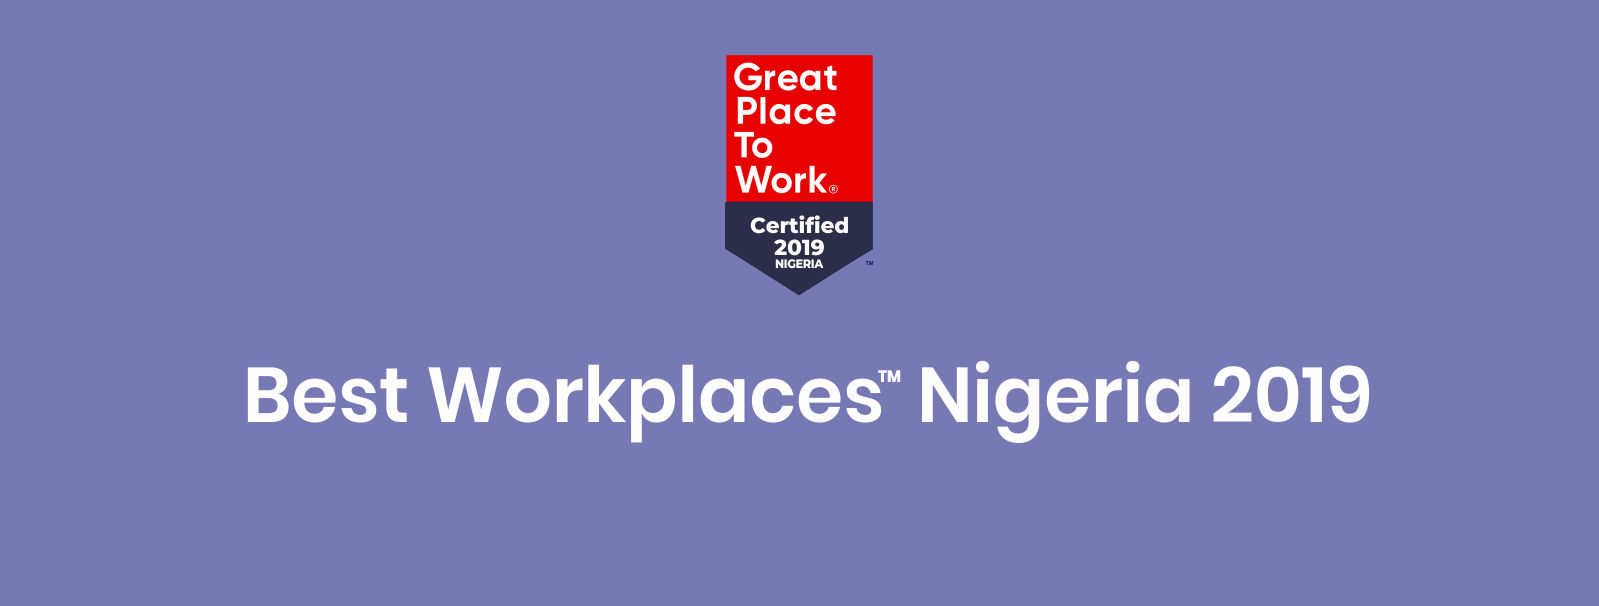 2019 Best Workplaces Nigeria  Apply Now